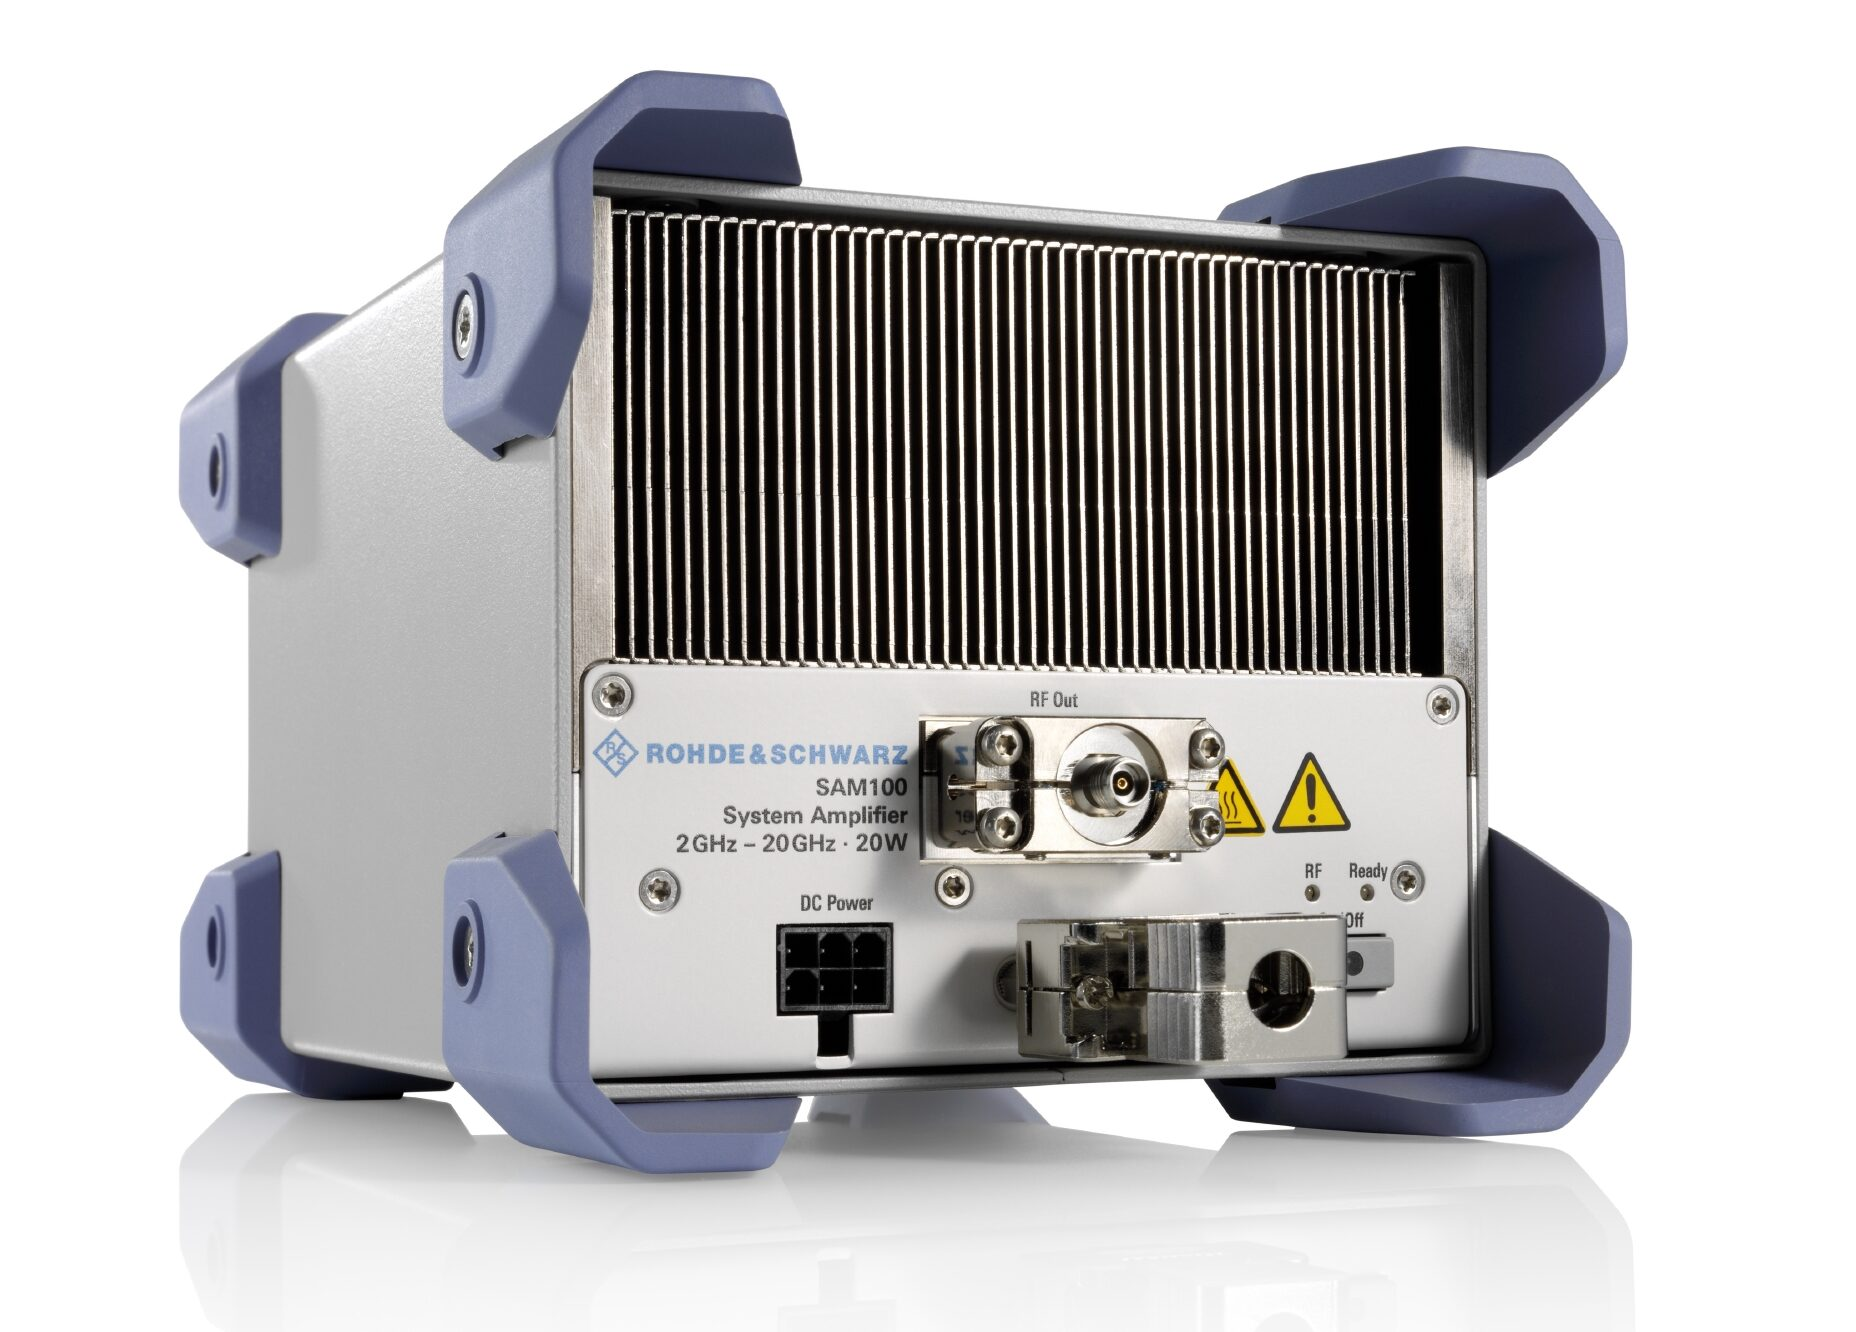 New Rohde & Schwarz System Amplifier Targets Microwave Device Manufacturers